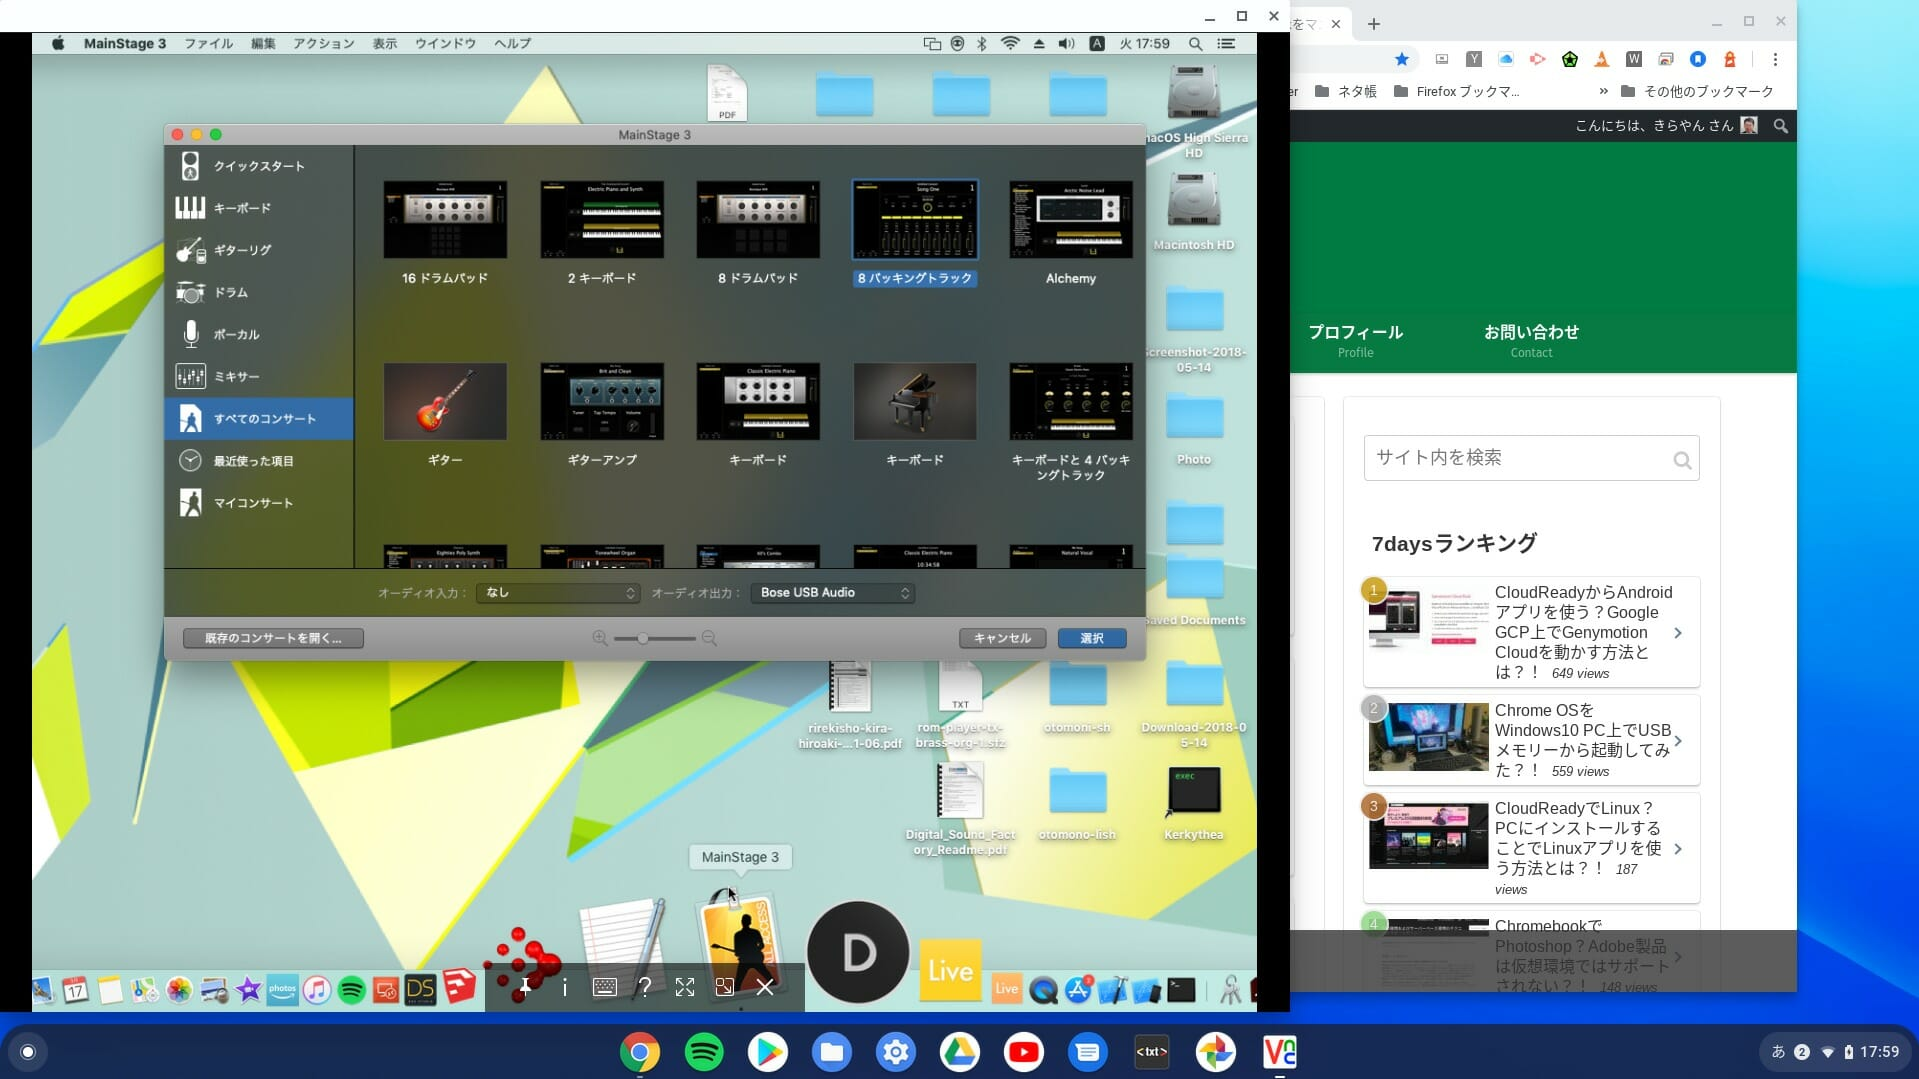 Chromebook Mac mini VNC リモート操作